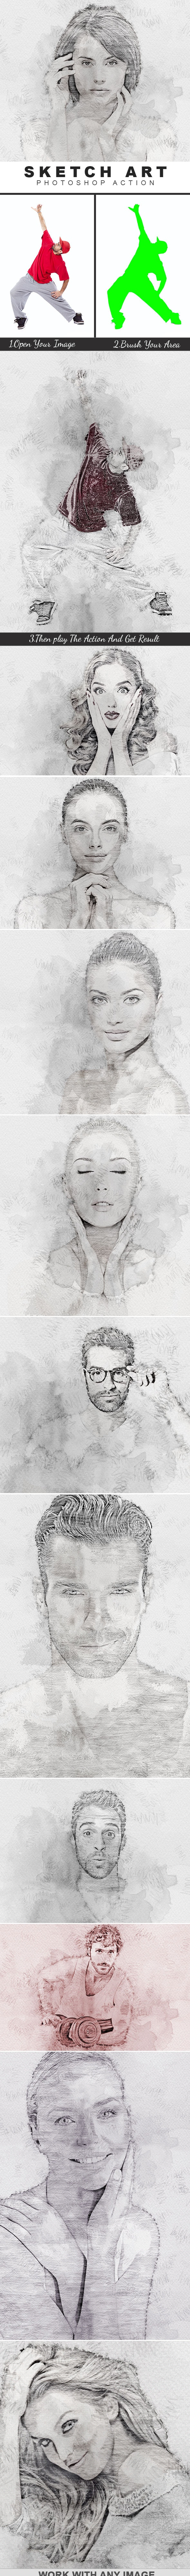 Sketch Art Photoshop Action - Photo Effects Actions